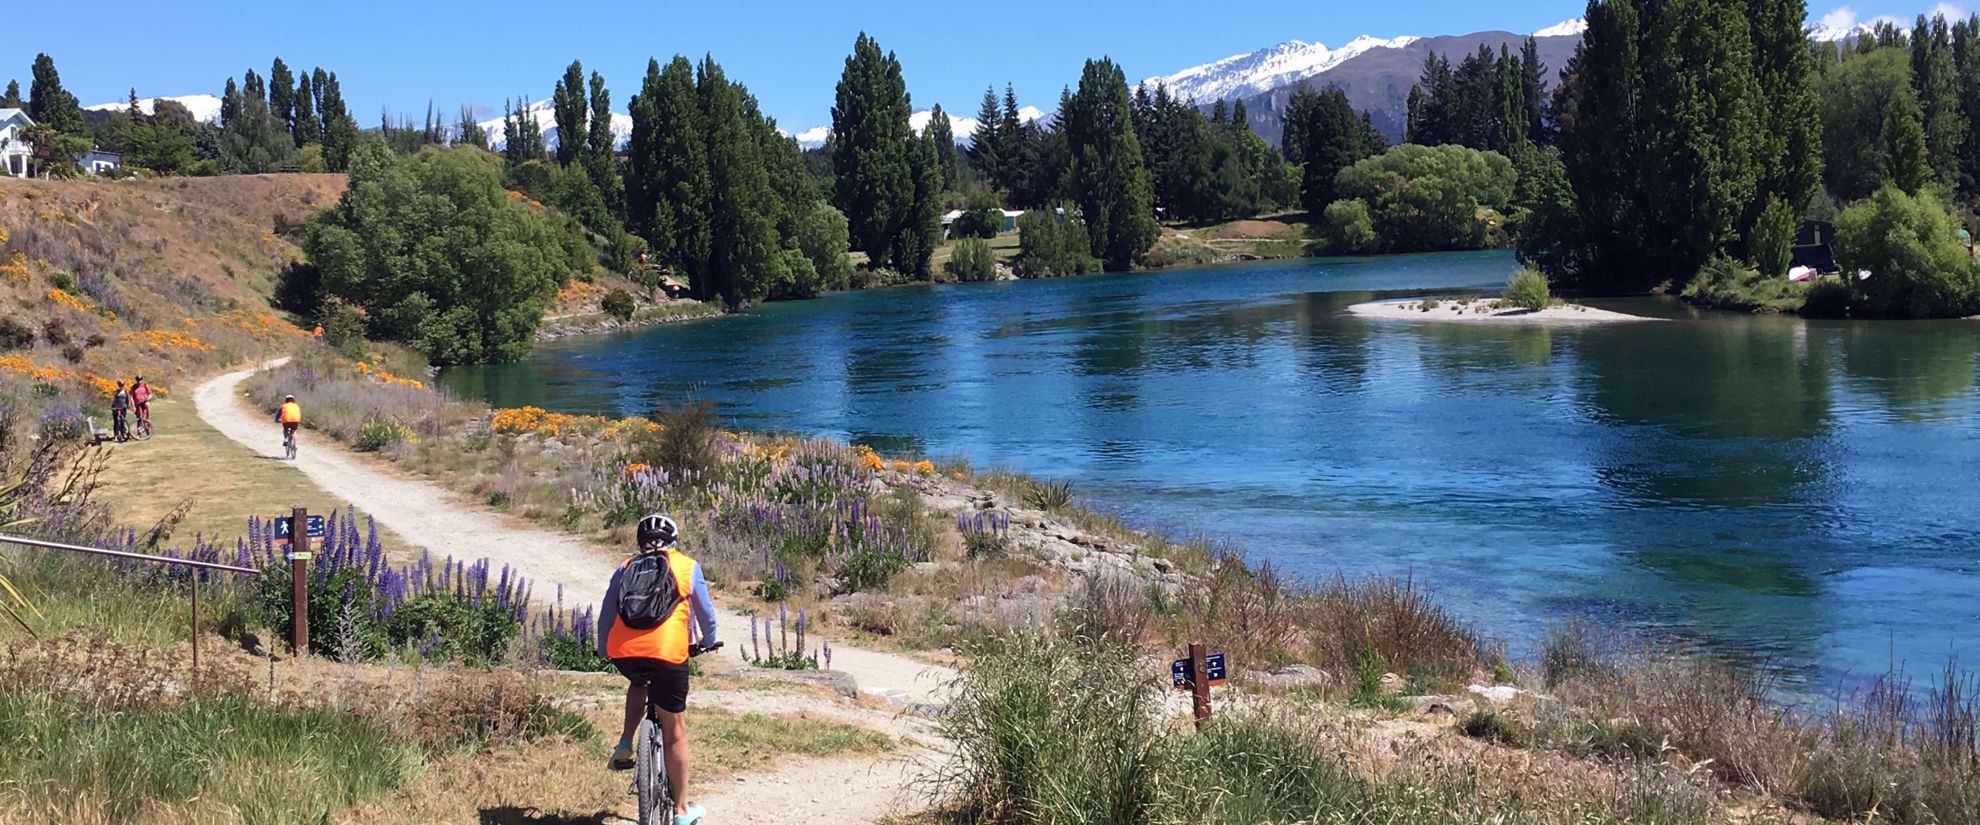 cycling trail by river in new zealand